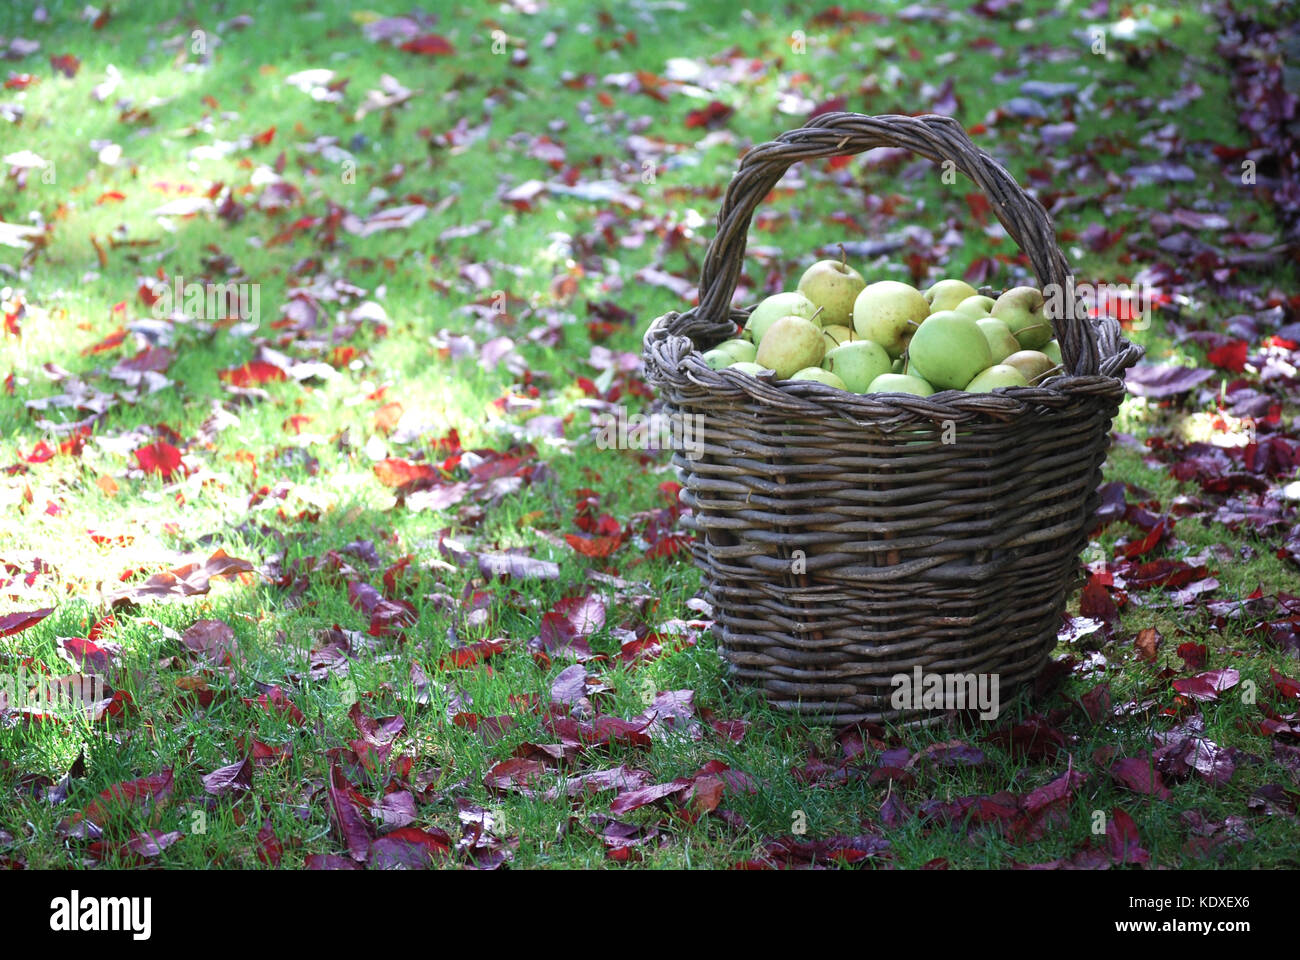 Basket filled with freshly picked Apples - Stock Image